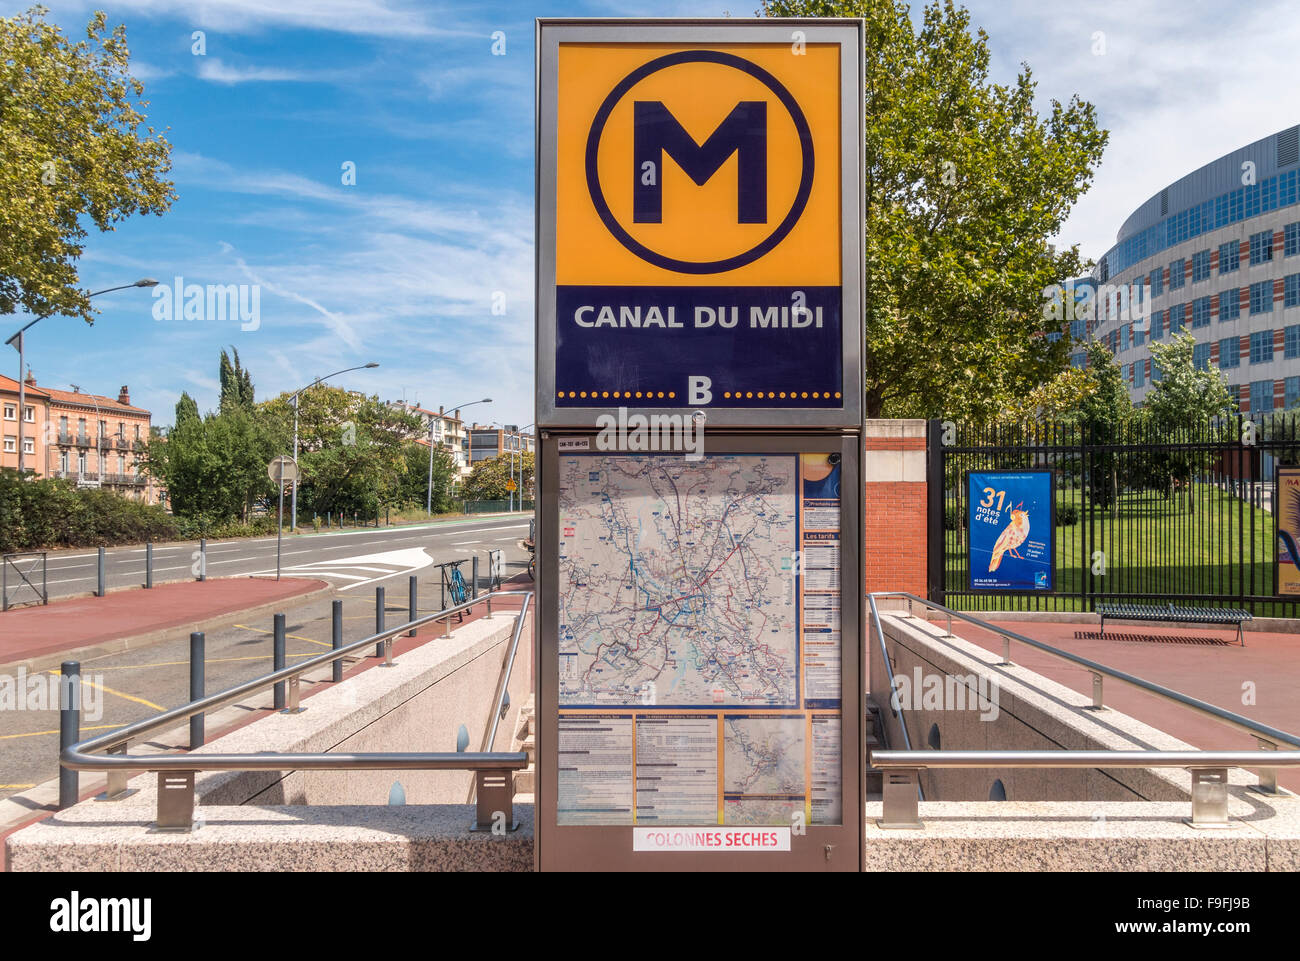 Toulouse Metro sign at the entrance to Metro Station Canal du Midi. - Stock Image